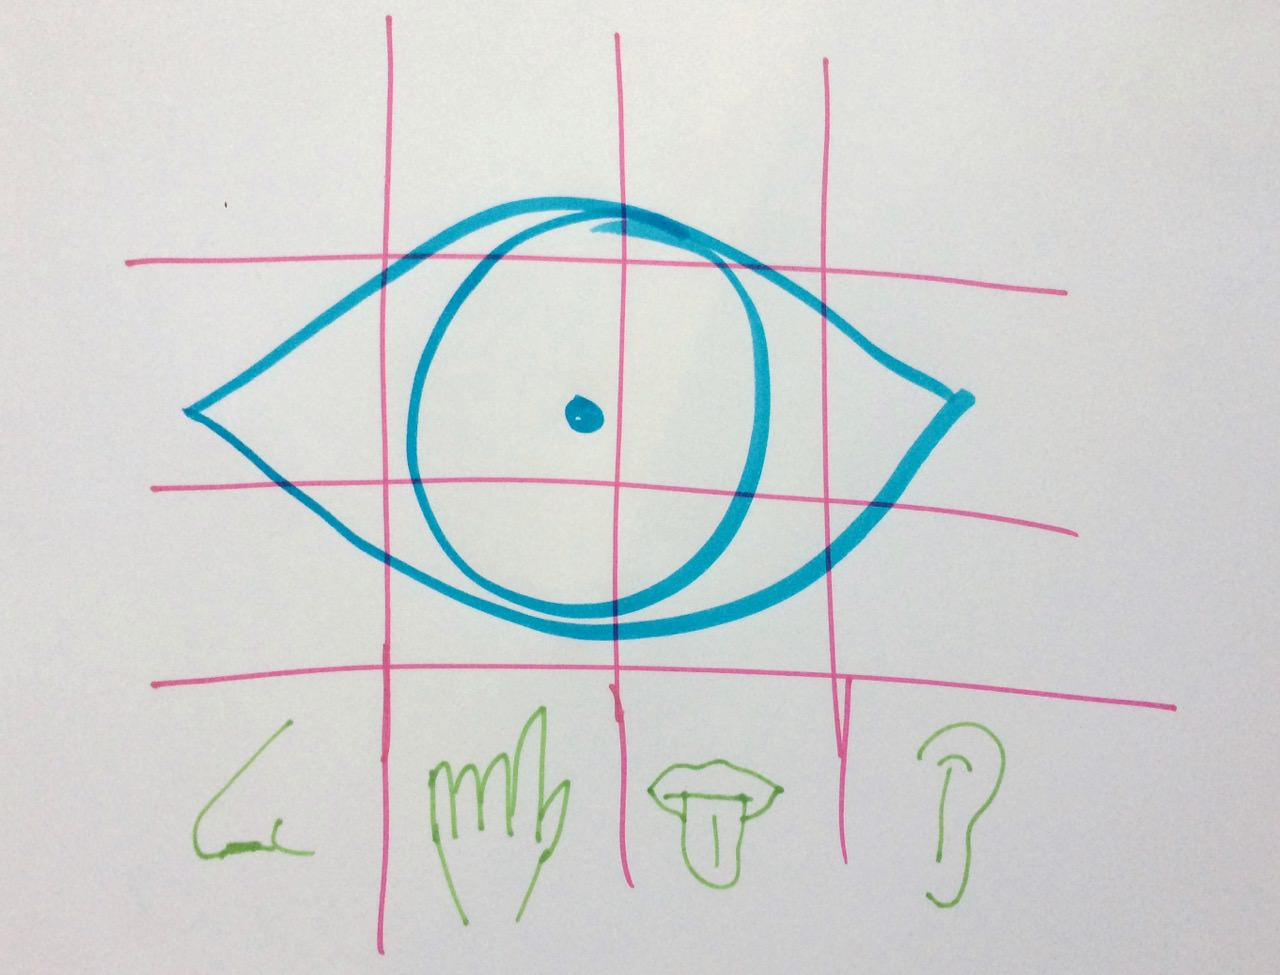 A drawing of a grid with small regions for a nose, a finger, a tongue and an ear, and a very large region for an eye